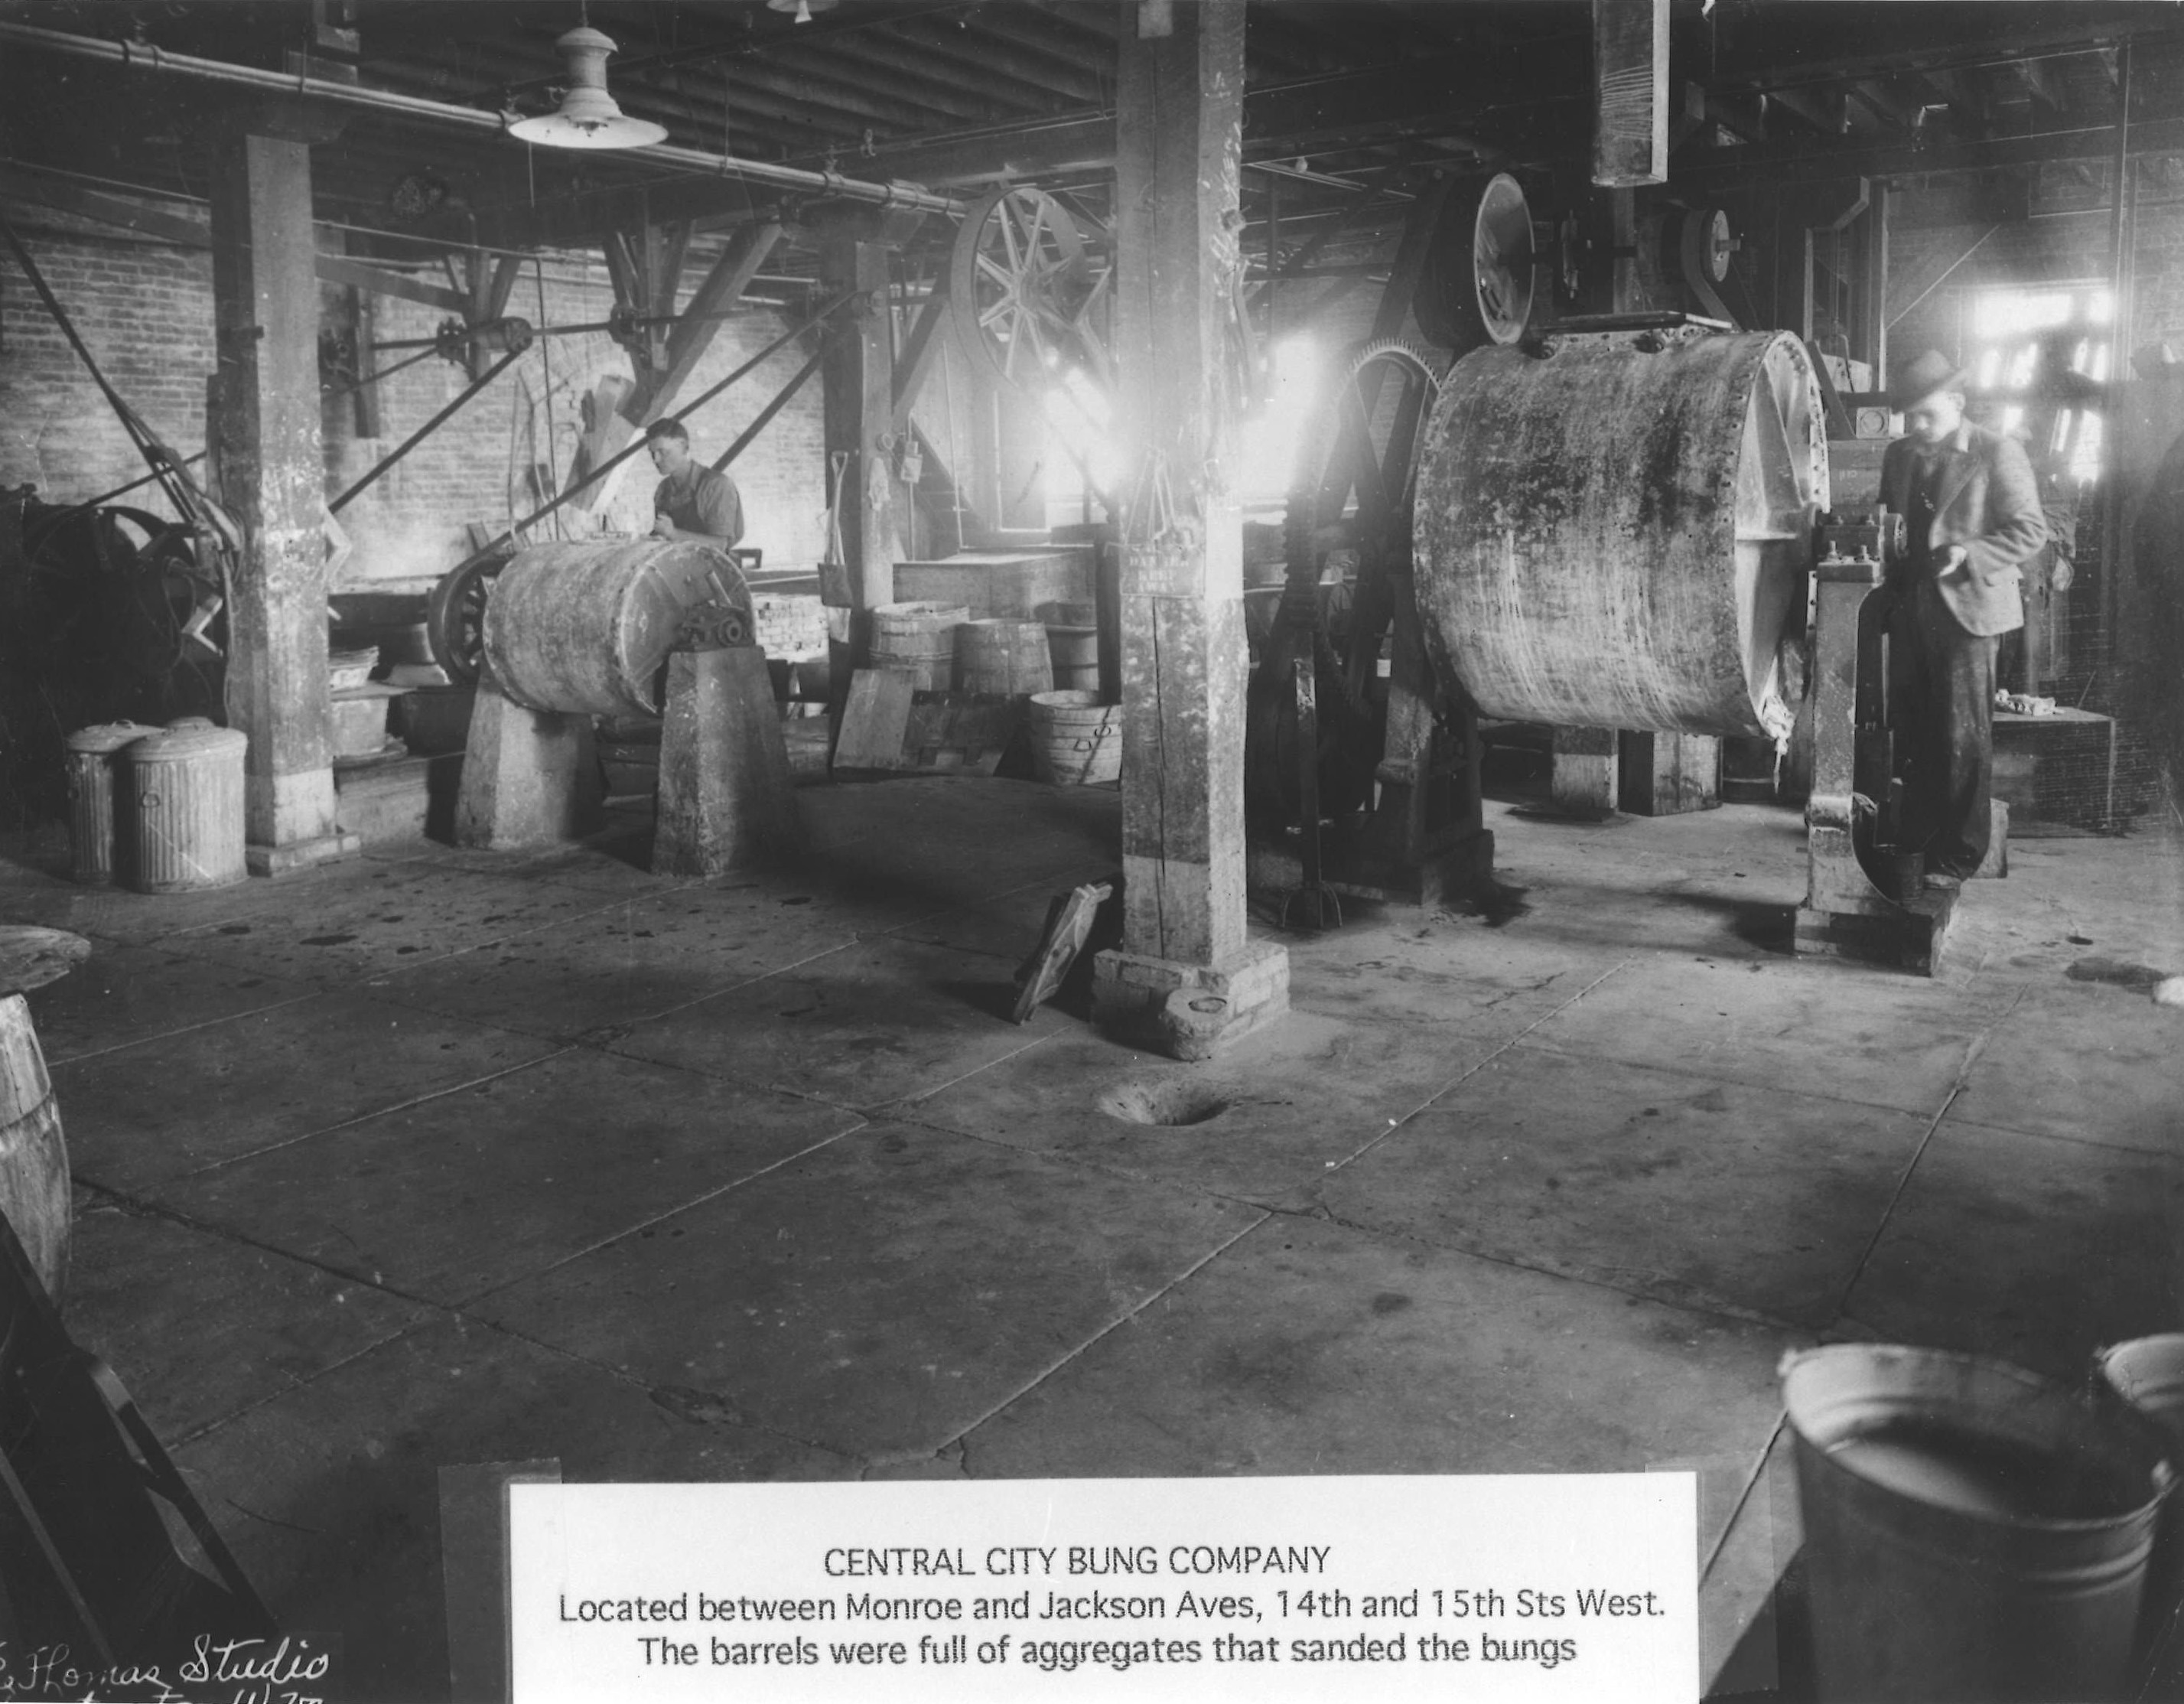 Workers inside the factory. Specialized machines were used for producing the bungs, and they reportedly were closely guarded. Image courtesy of the West Huntington Public Library.